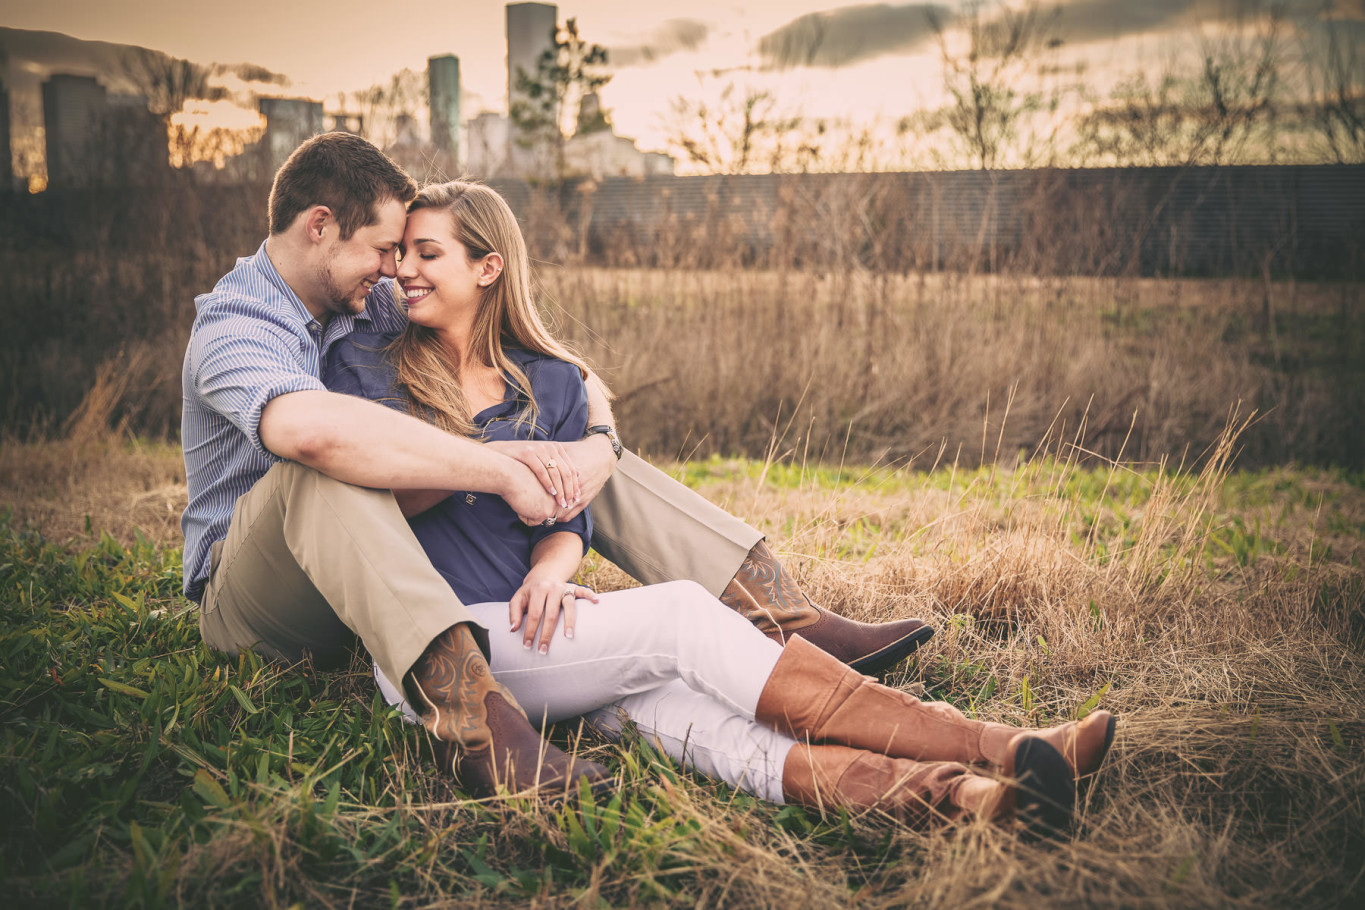 houston downtown skyline hogoboom engagement portrait by steve lee photography